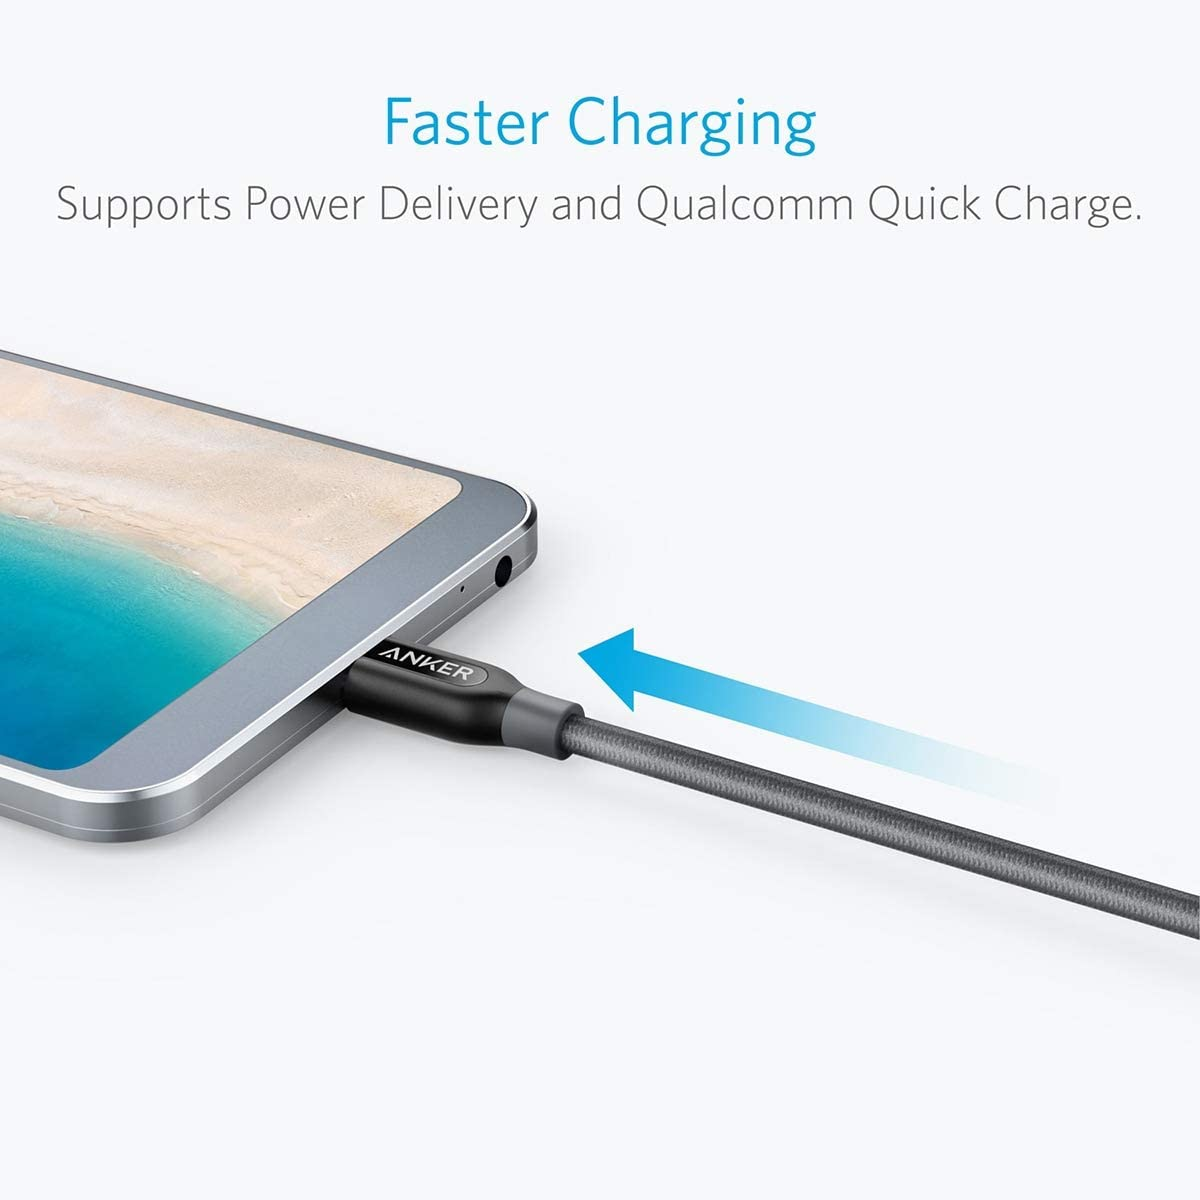 Powerline+ USB C to USB C Cord Power Delivery PD Charging for MacBook Chromebook Switch iPad Pro 2020 and More Type-C Devices//Laptops Anker USB C to USB C Cable Huawei Matebook 3ft Pixel